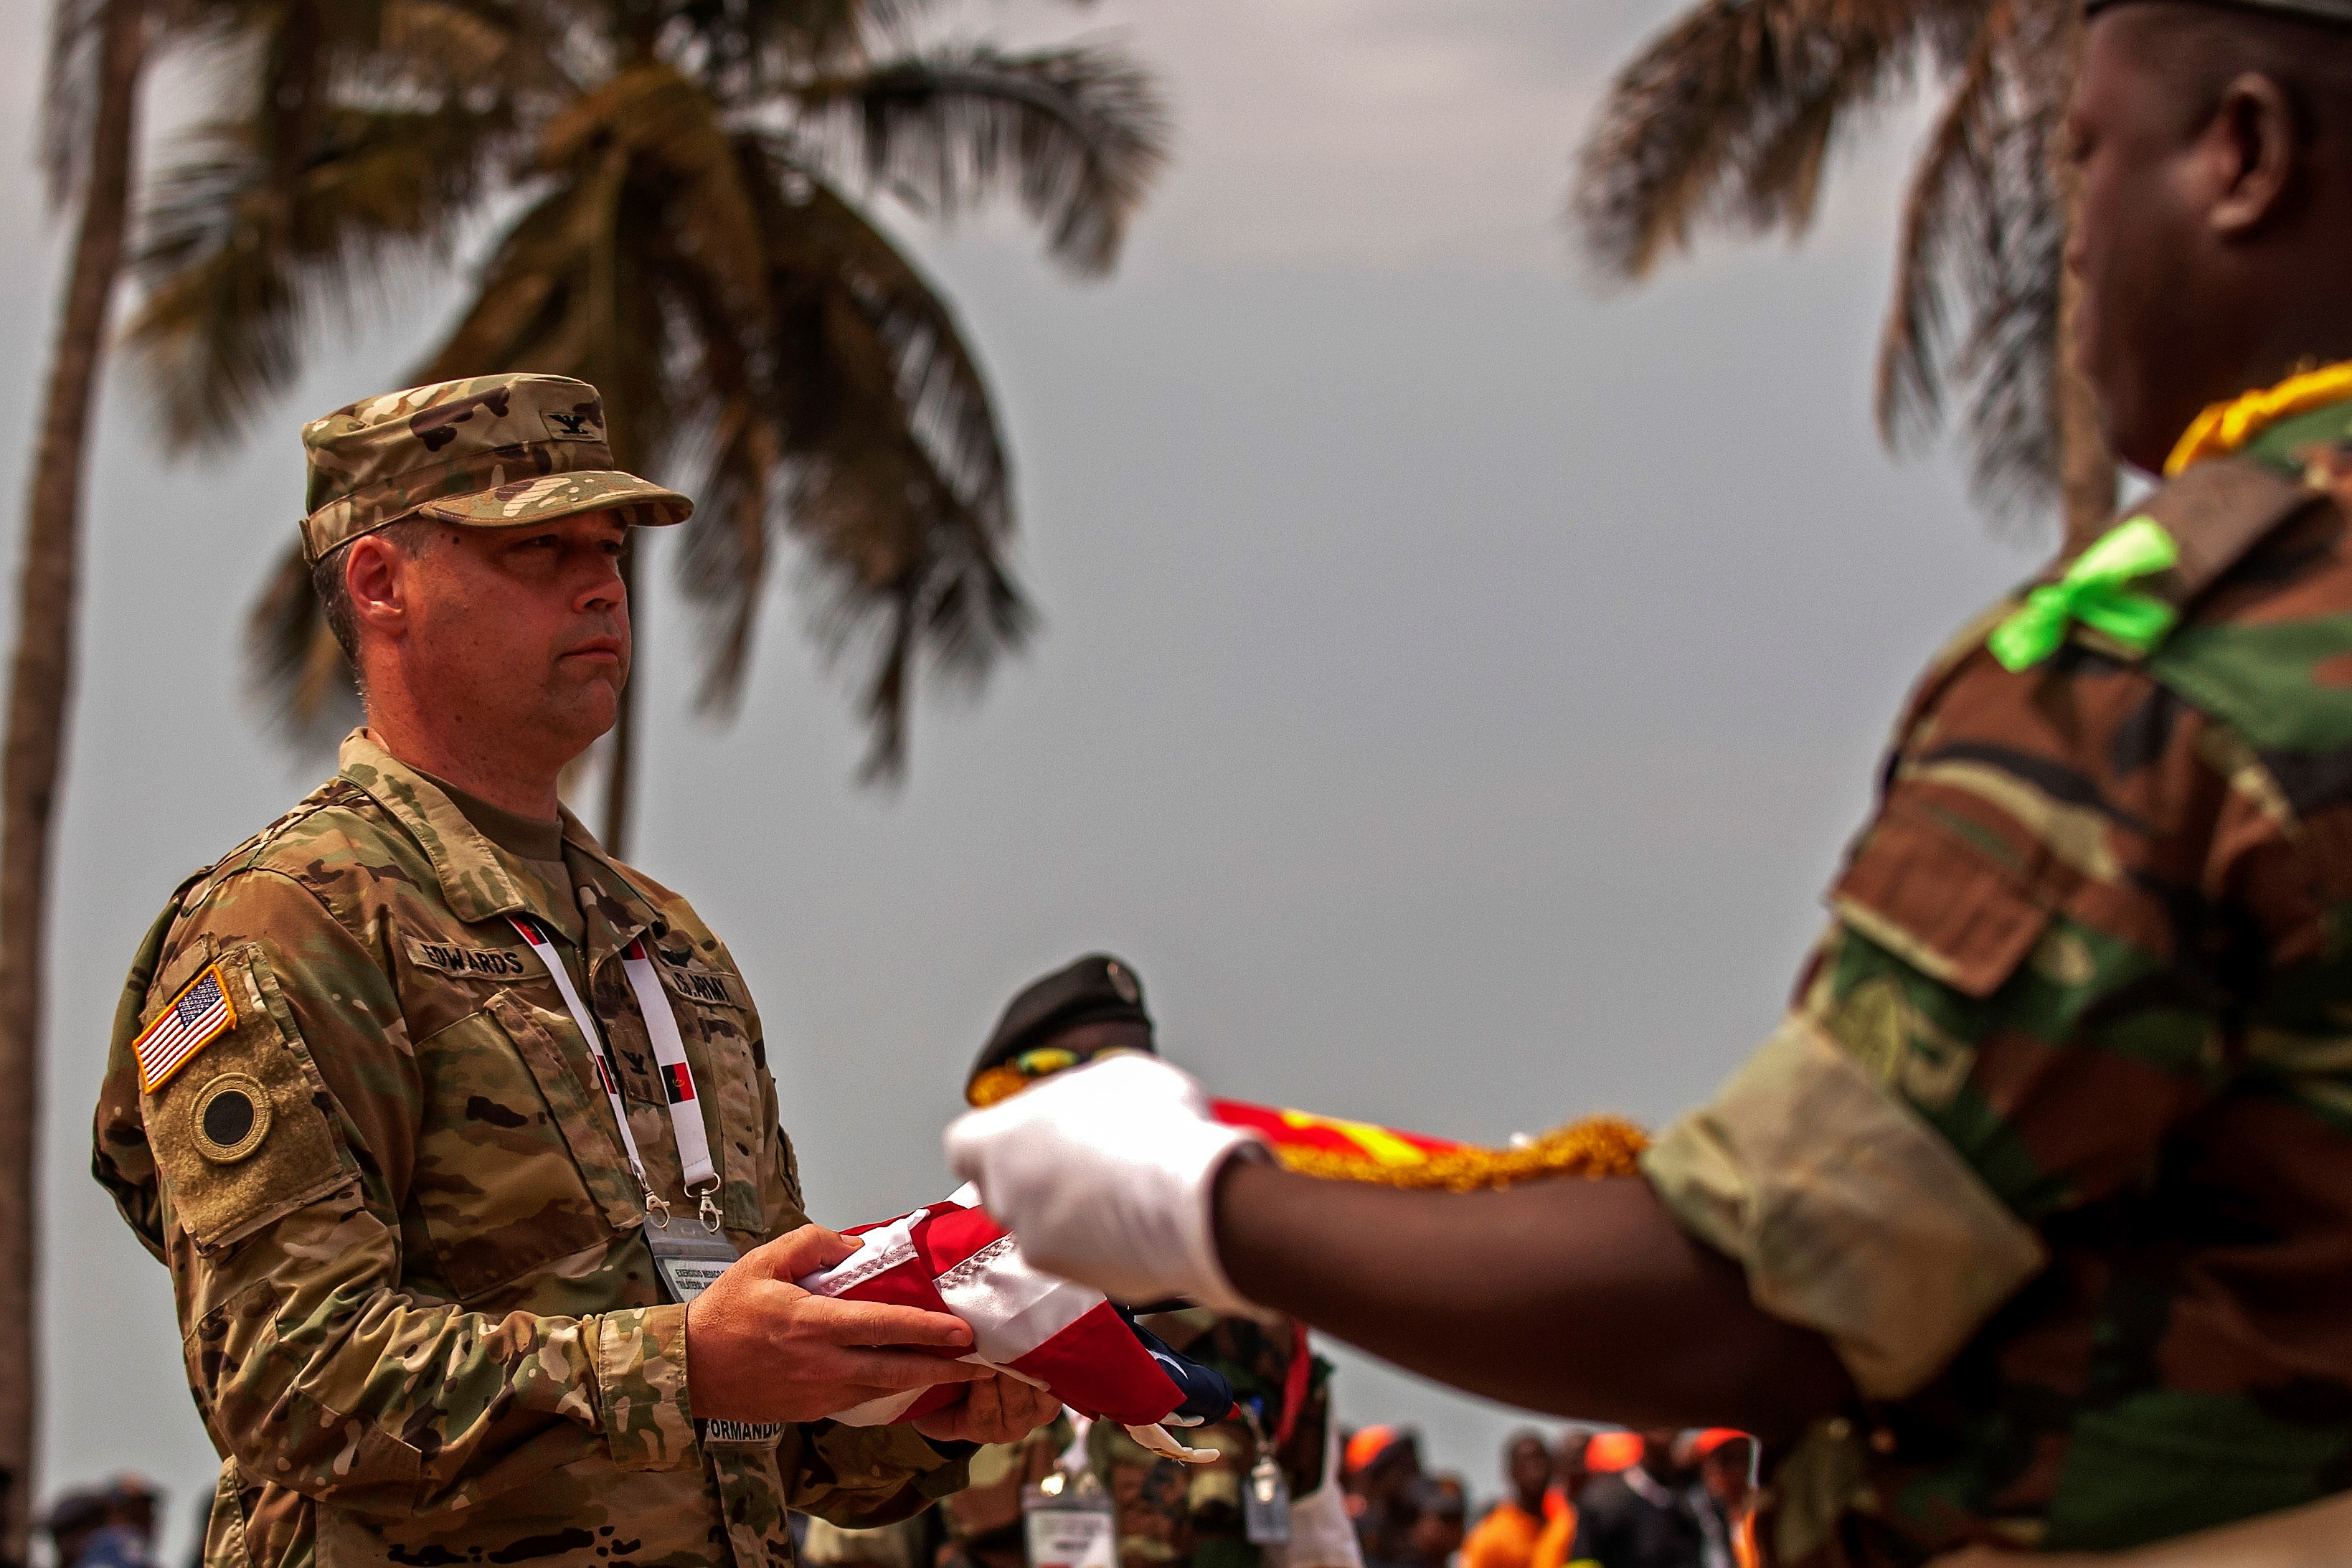 Col. Kevin Edwards, an Ohio Army National Guard nurse practitioner, accepts the U.S. flag during of the exchanging of flags at the VIP day and closing ceremony for PAMBALA 2017, Dec. 14, 2017, in Bengo Province, Angola. Personnel from the Serbian Armed Forces and the Ohio National Guard exchanged flags with their host nation, the Republic of Angola, and remarks were given by representatives of each participating country on the success of the first-ever trilateral engagement. (Ohio National Guard photo by Staff Sgt. Wendy Kuhn)